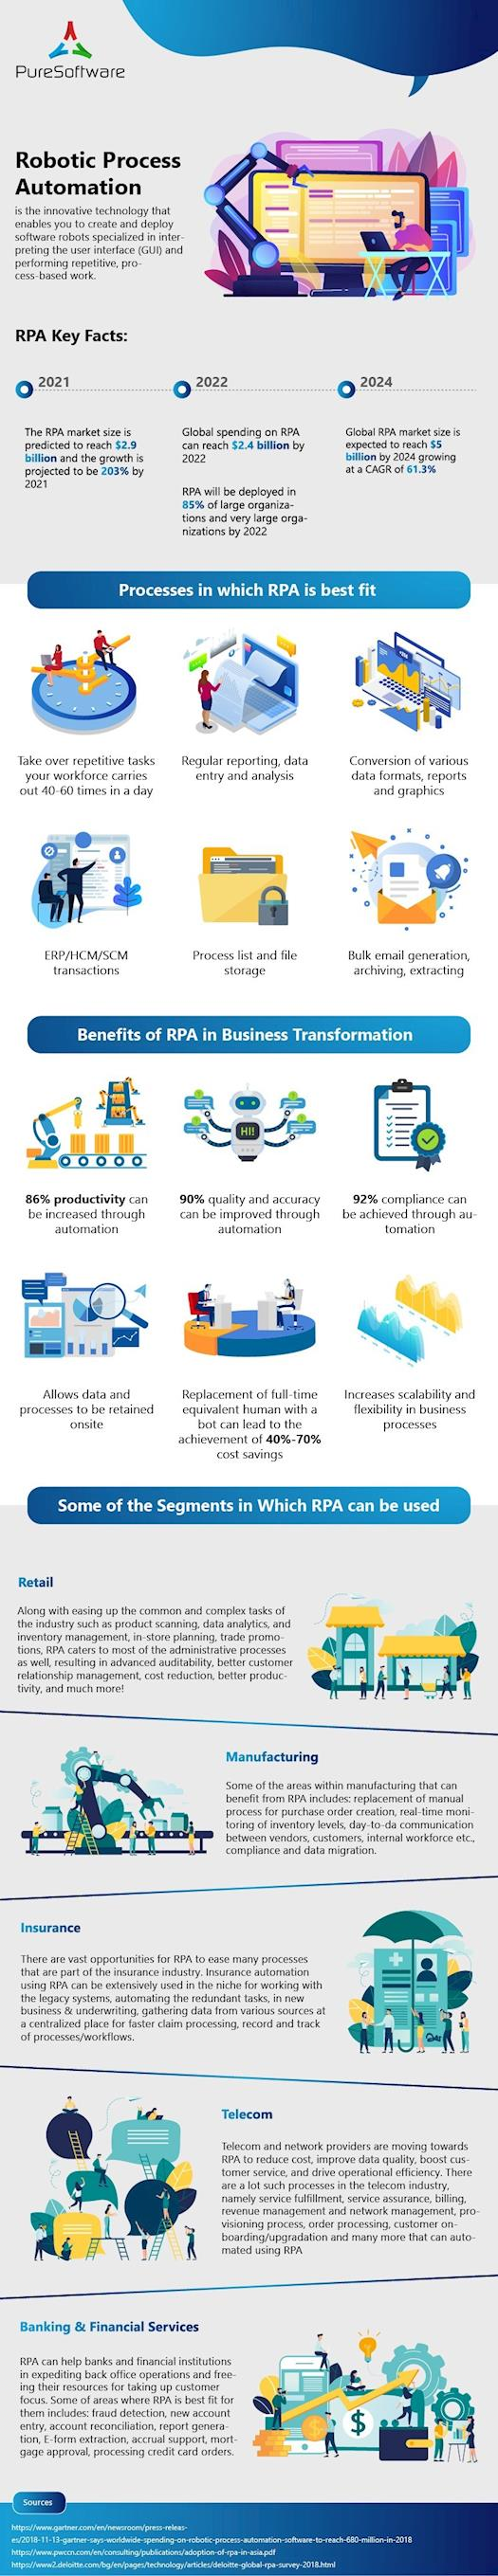 RPA for Business Transformation